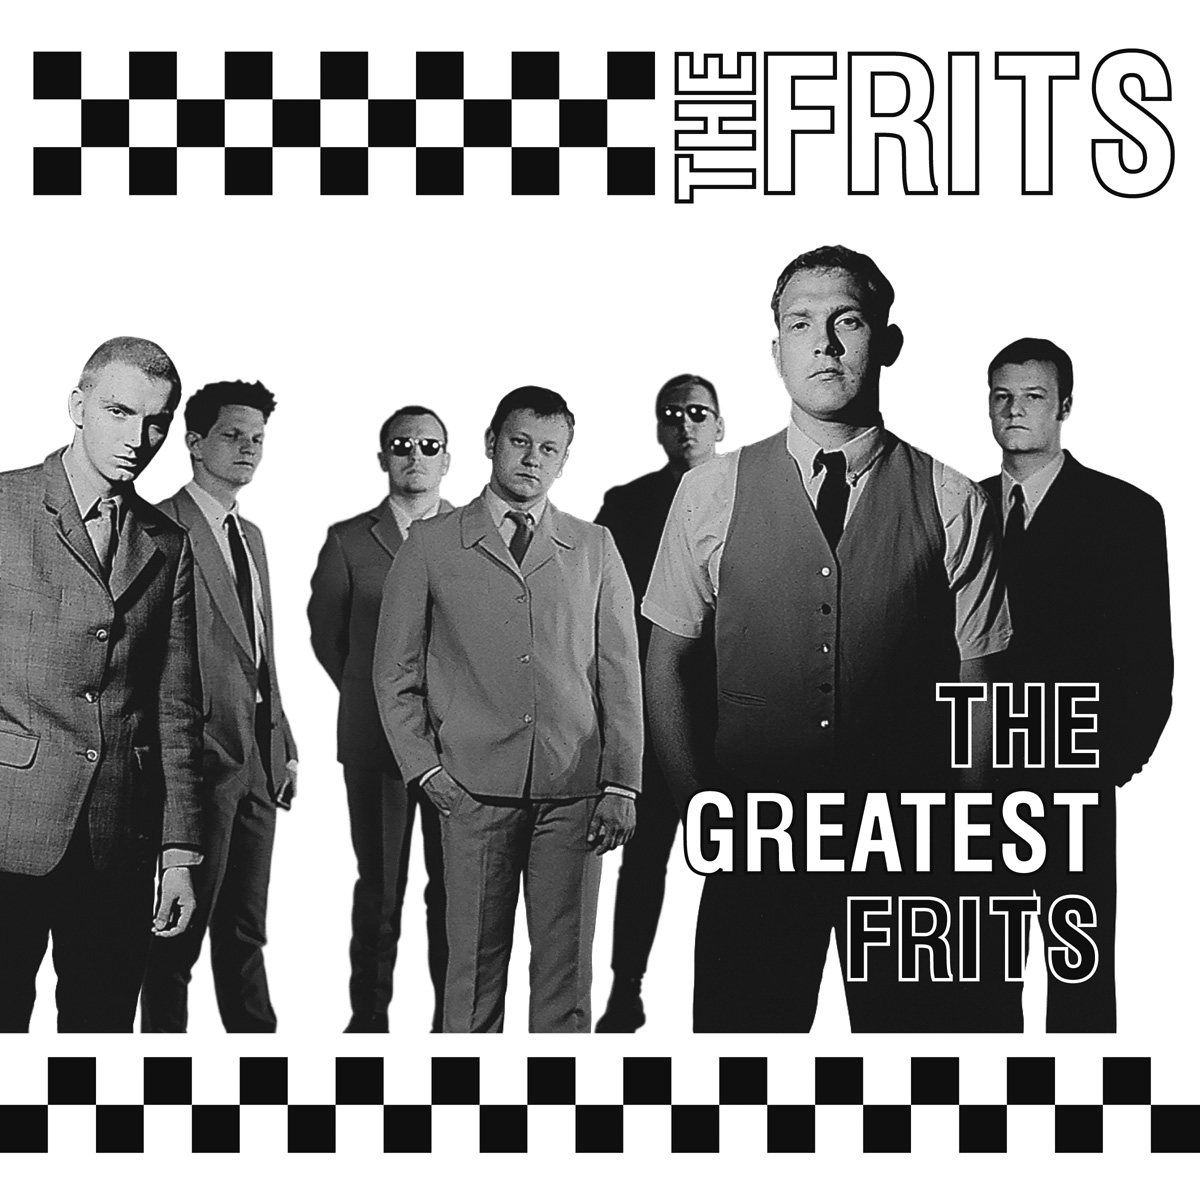 THE FRITS - new album THE GREATEST FRITS Release am 22. Januar 2016THE FRITS - neues Album THE GREATEST FRITS release THE FRITS - neues Album THE GREA